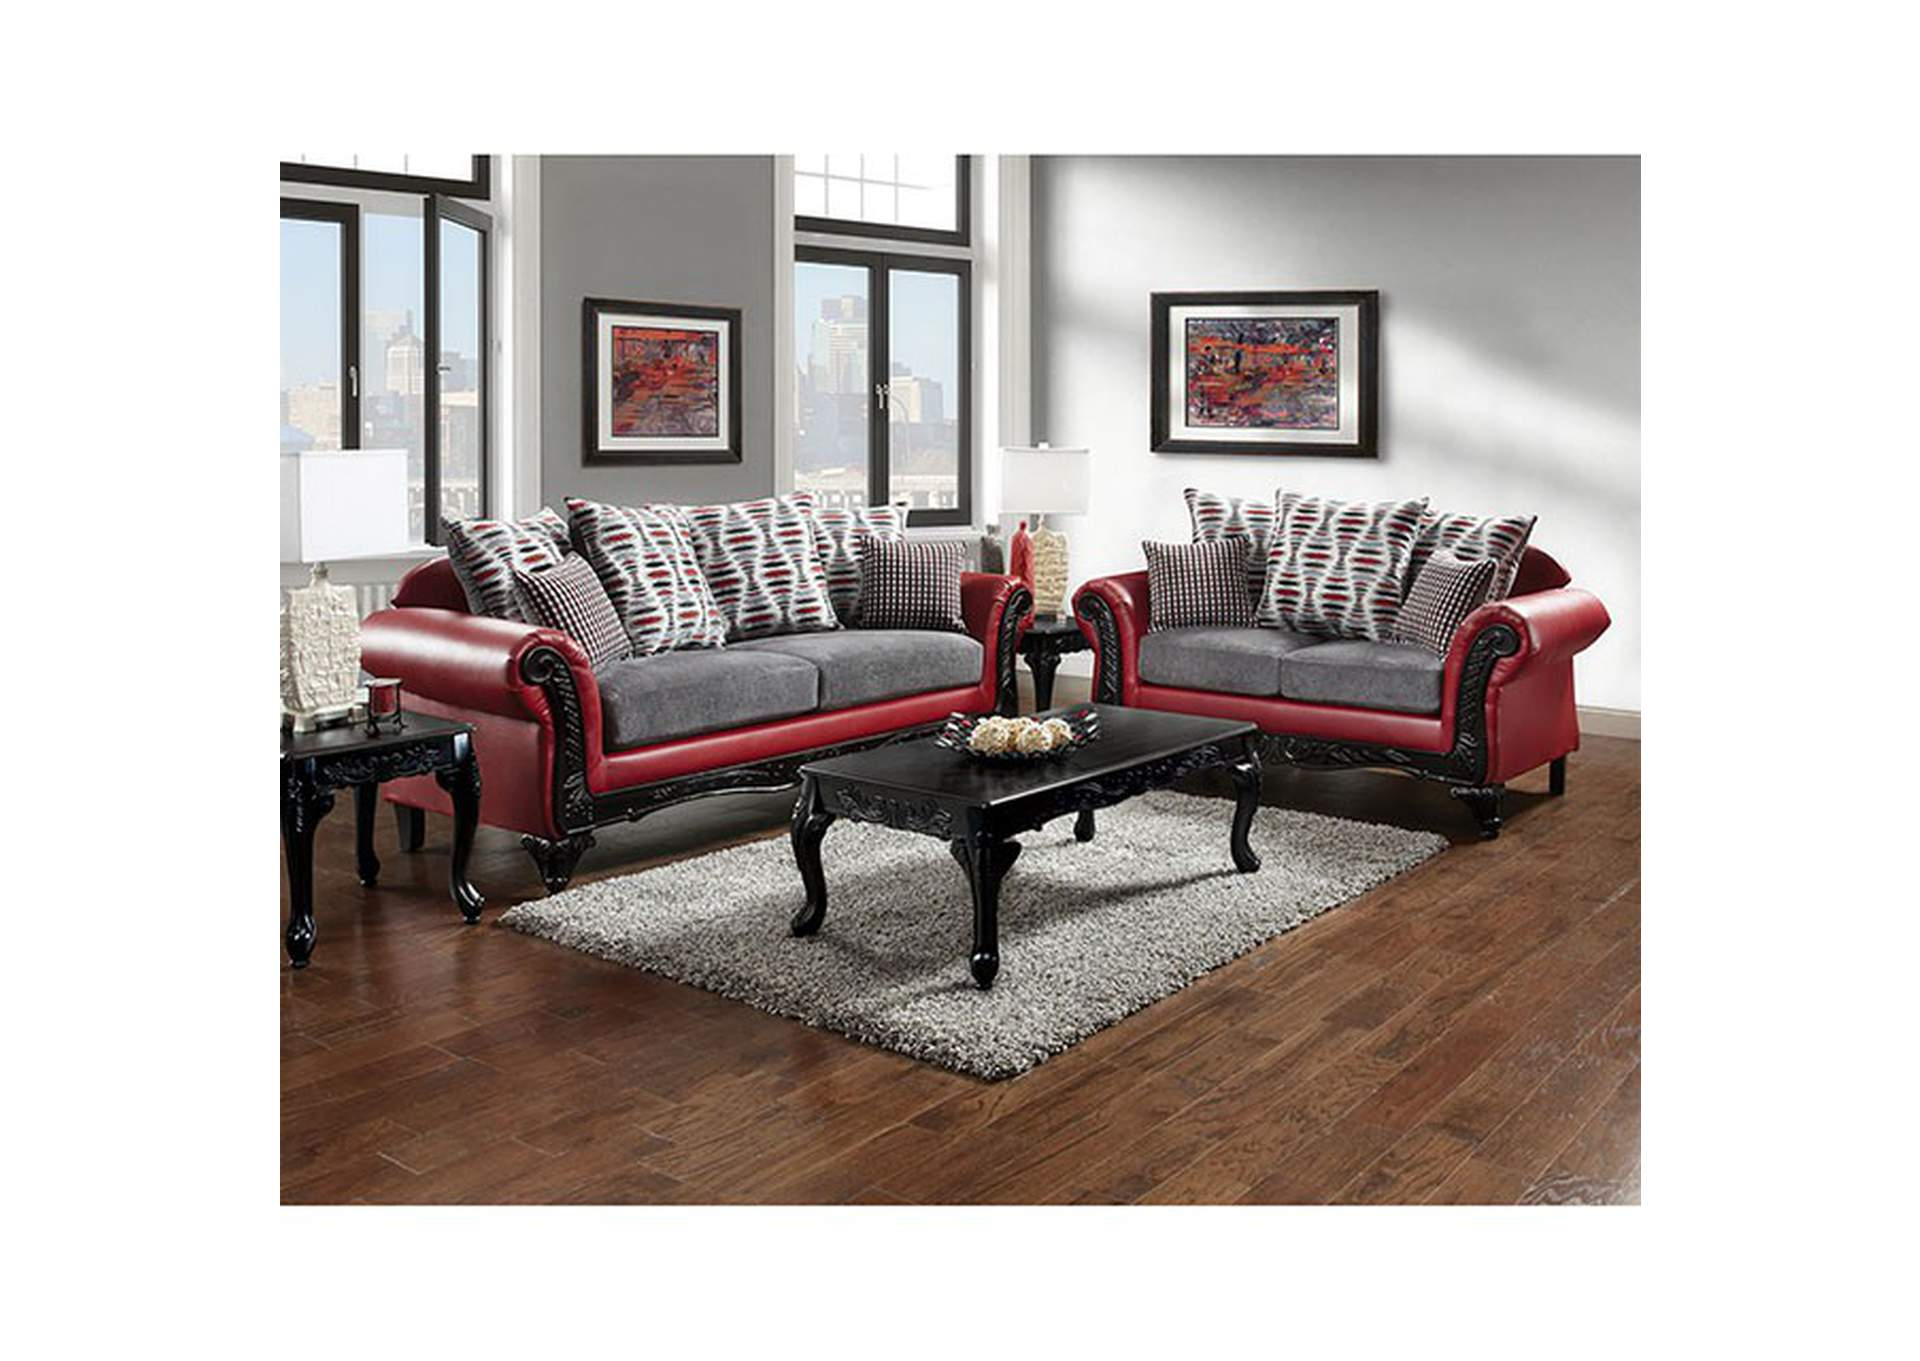 Dimensional Furniture Outlet Myron RedGrey Sofa And Loveseat Mesmerizing Dimensional Design Furniture Outlet Design